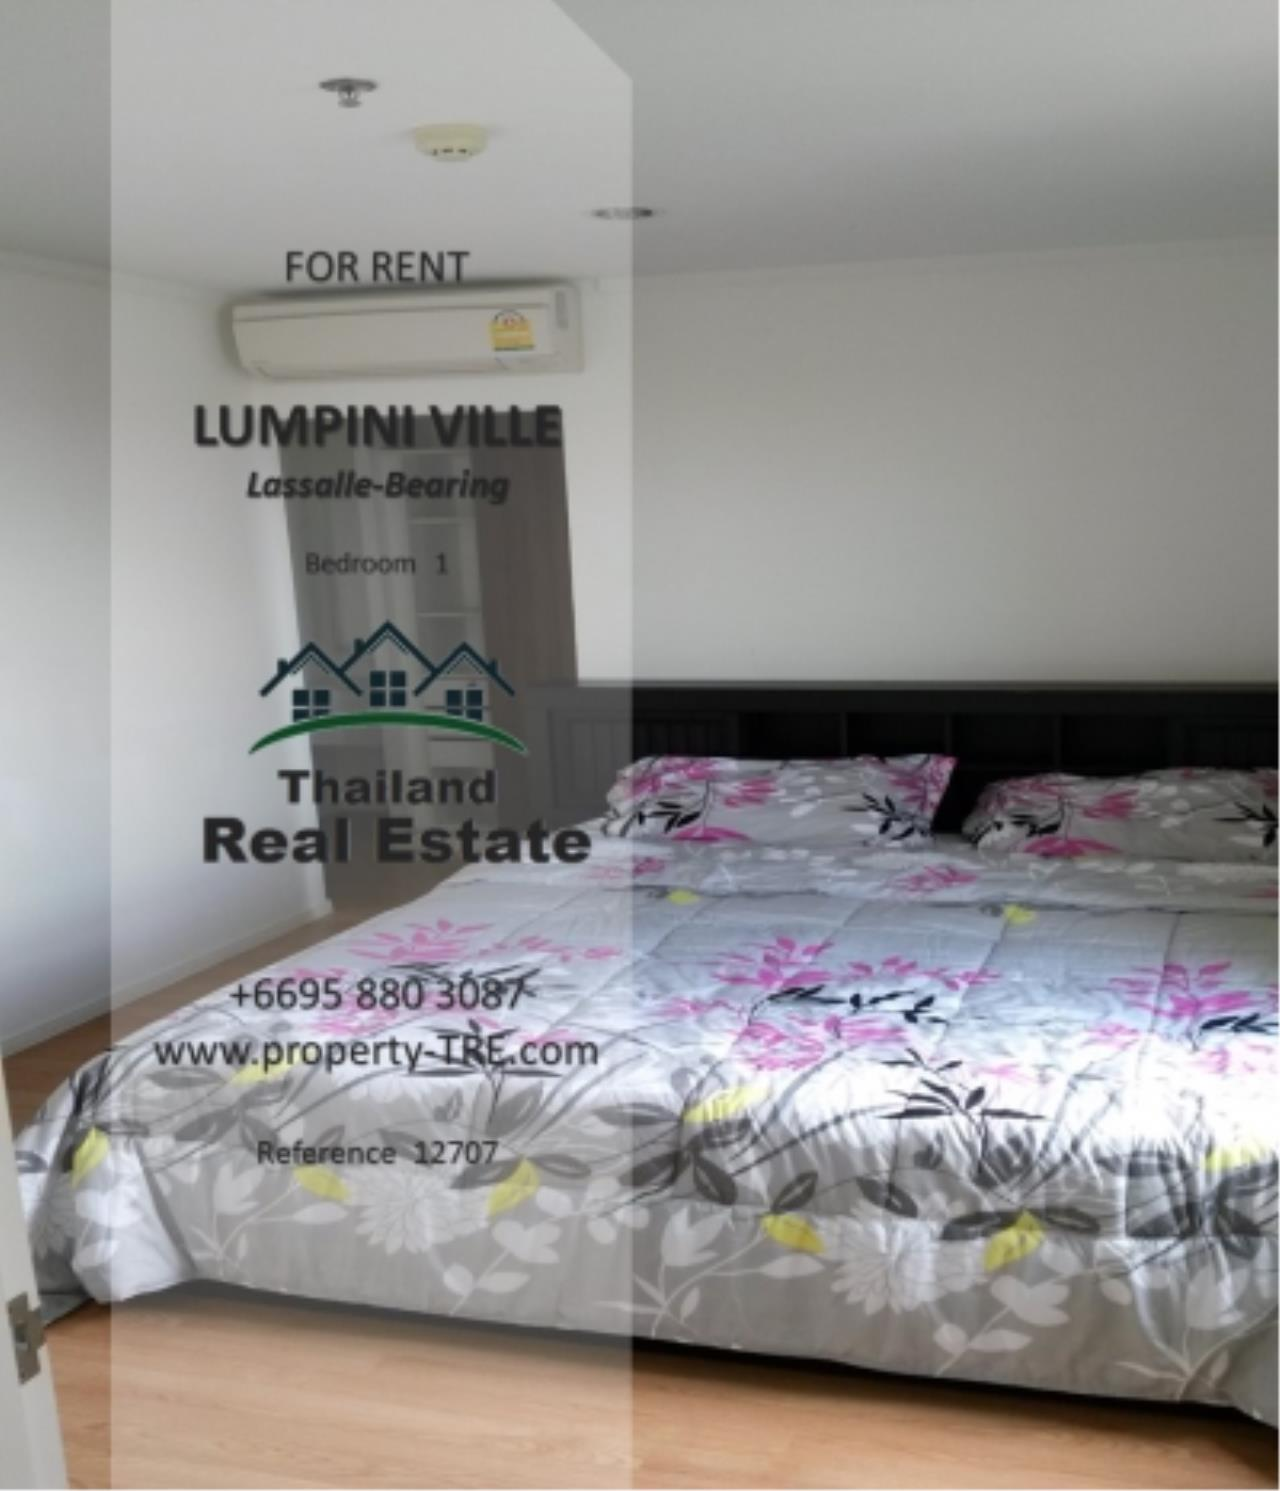 Thailand Real Estate Agency's 2 Bedroom Condo at Lumpini Ville  near Bkk Patana School(12707) 15